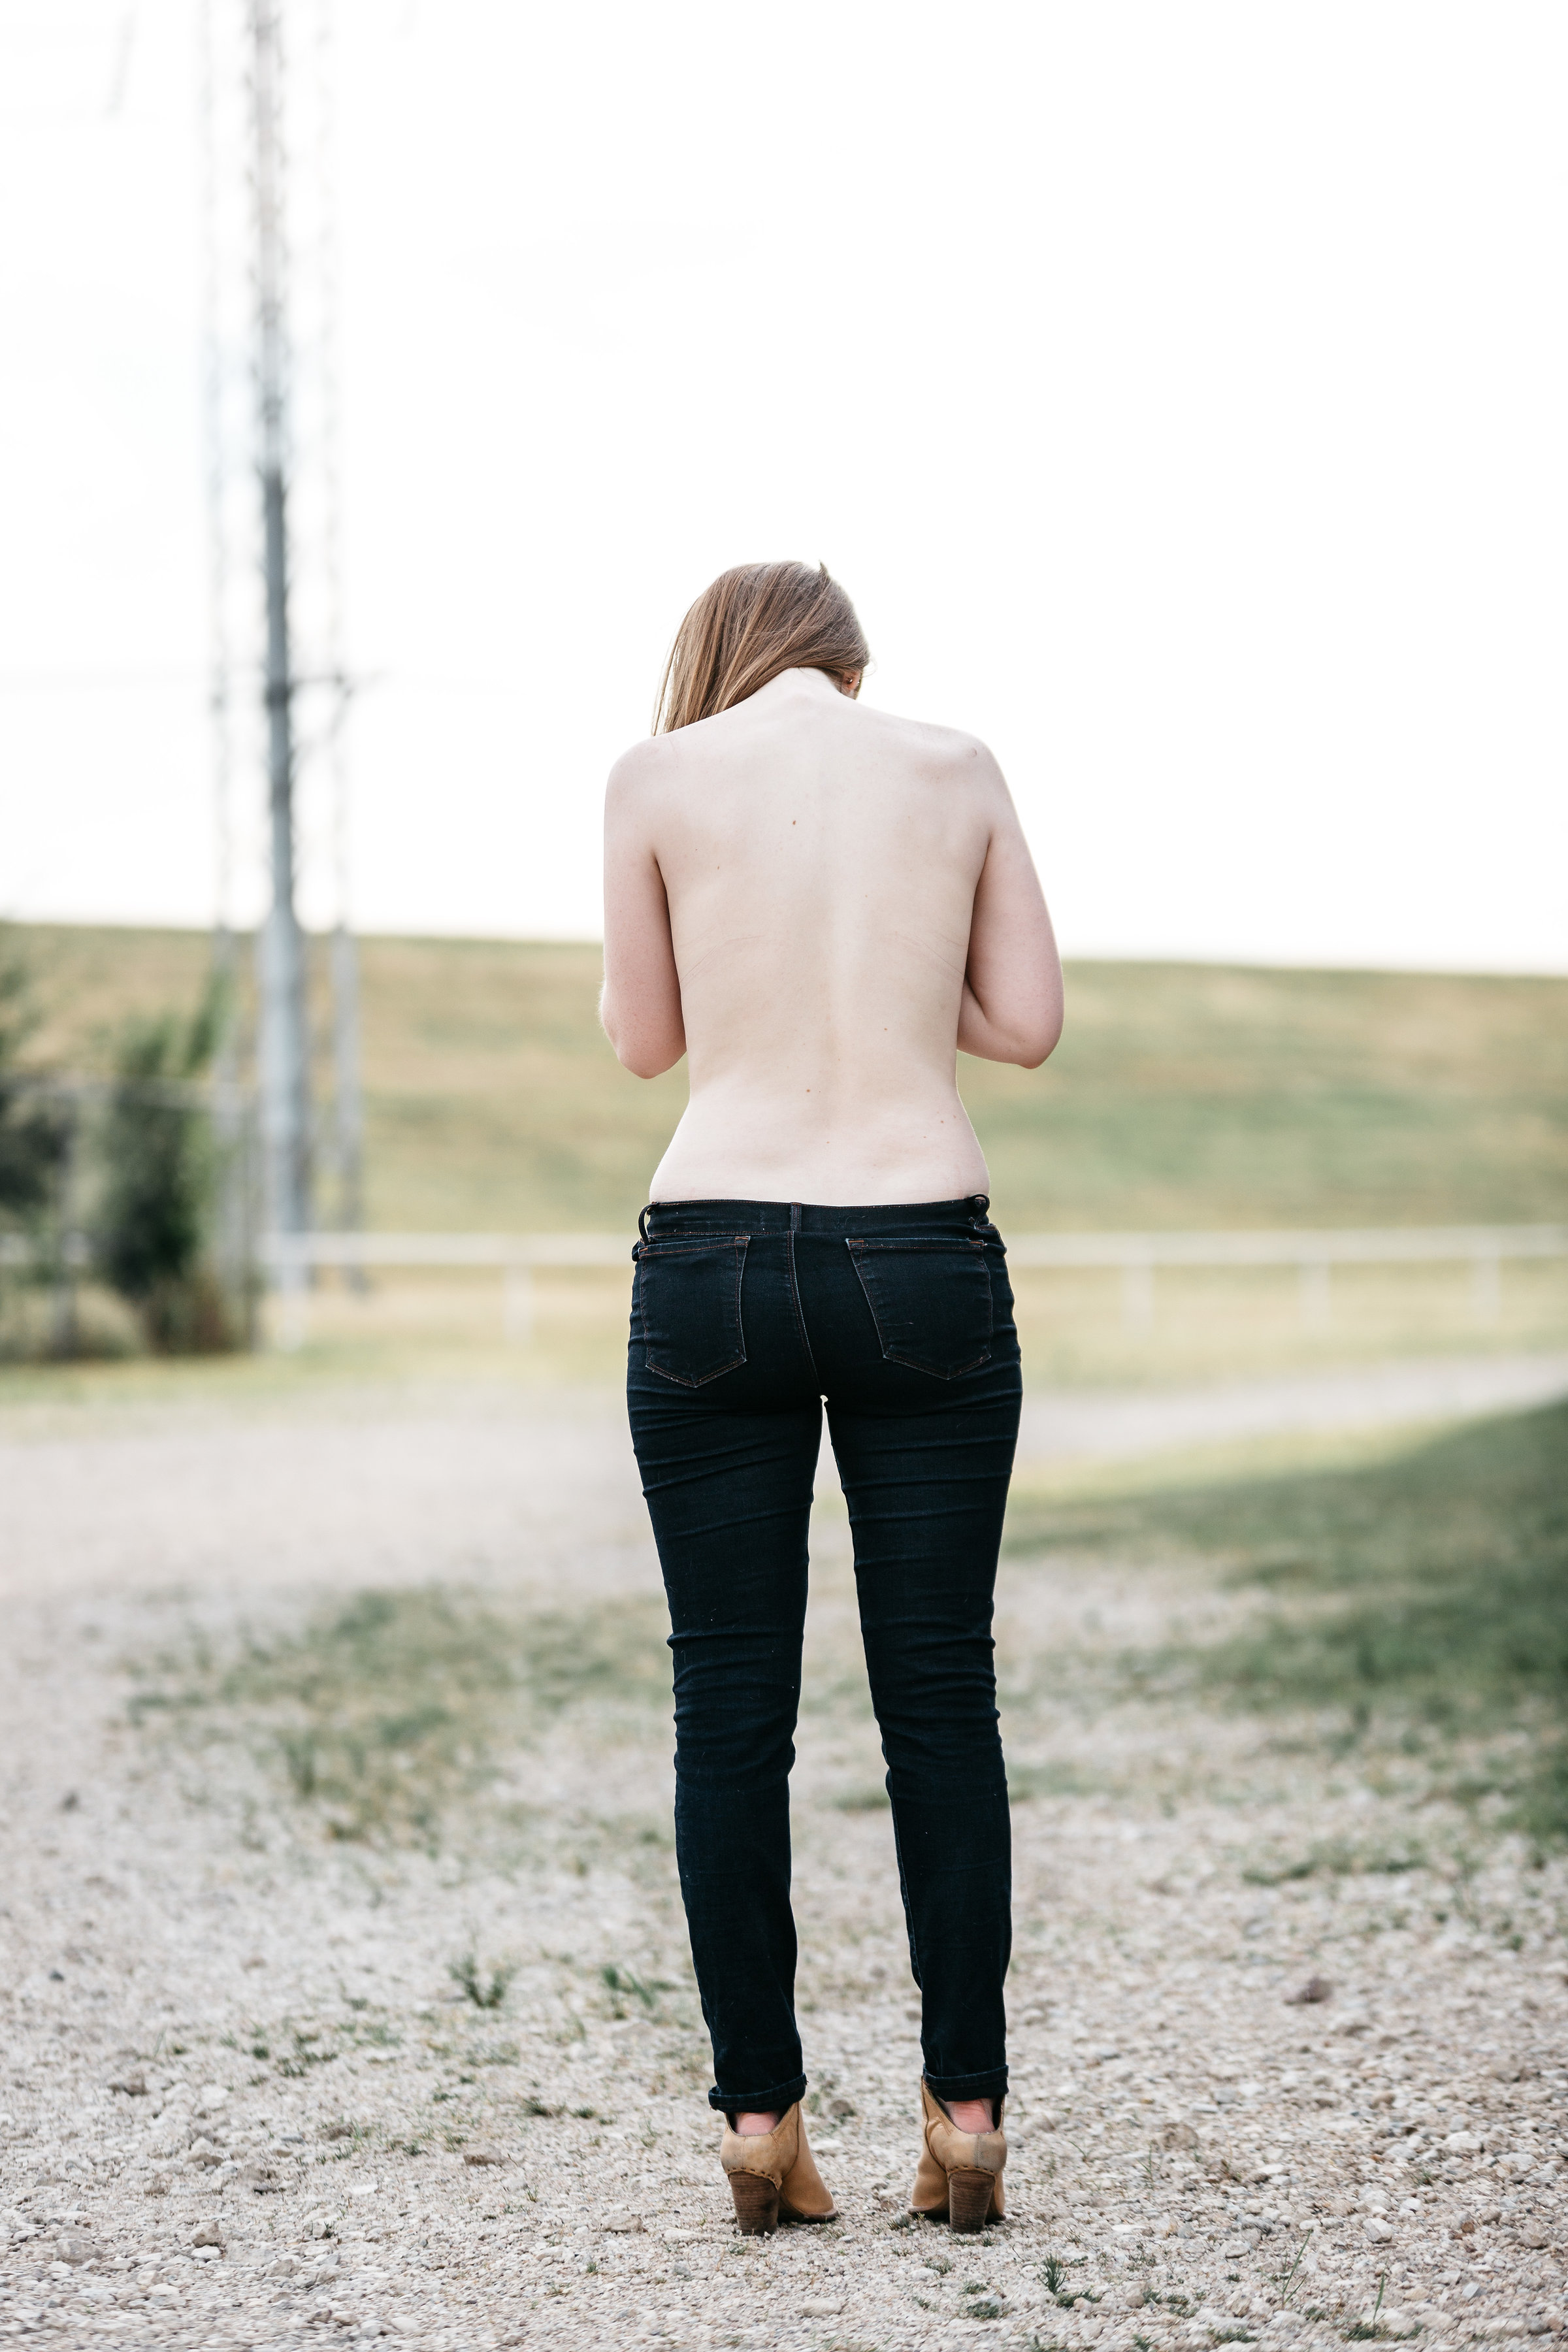 bent but not broken, lives affected by scoliosis, beckley photography, living with scoliosis, scoliosis statistics, dallas blogger, lments of style, how to help scoliosis